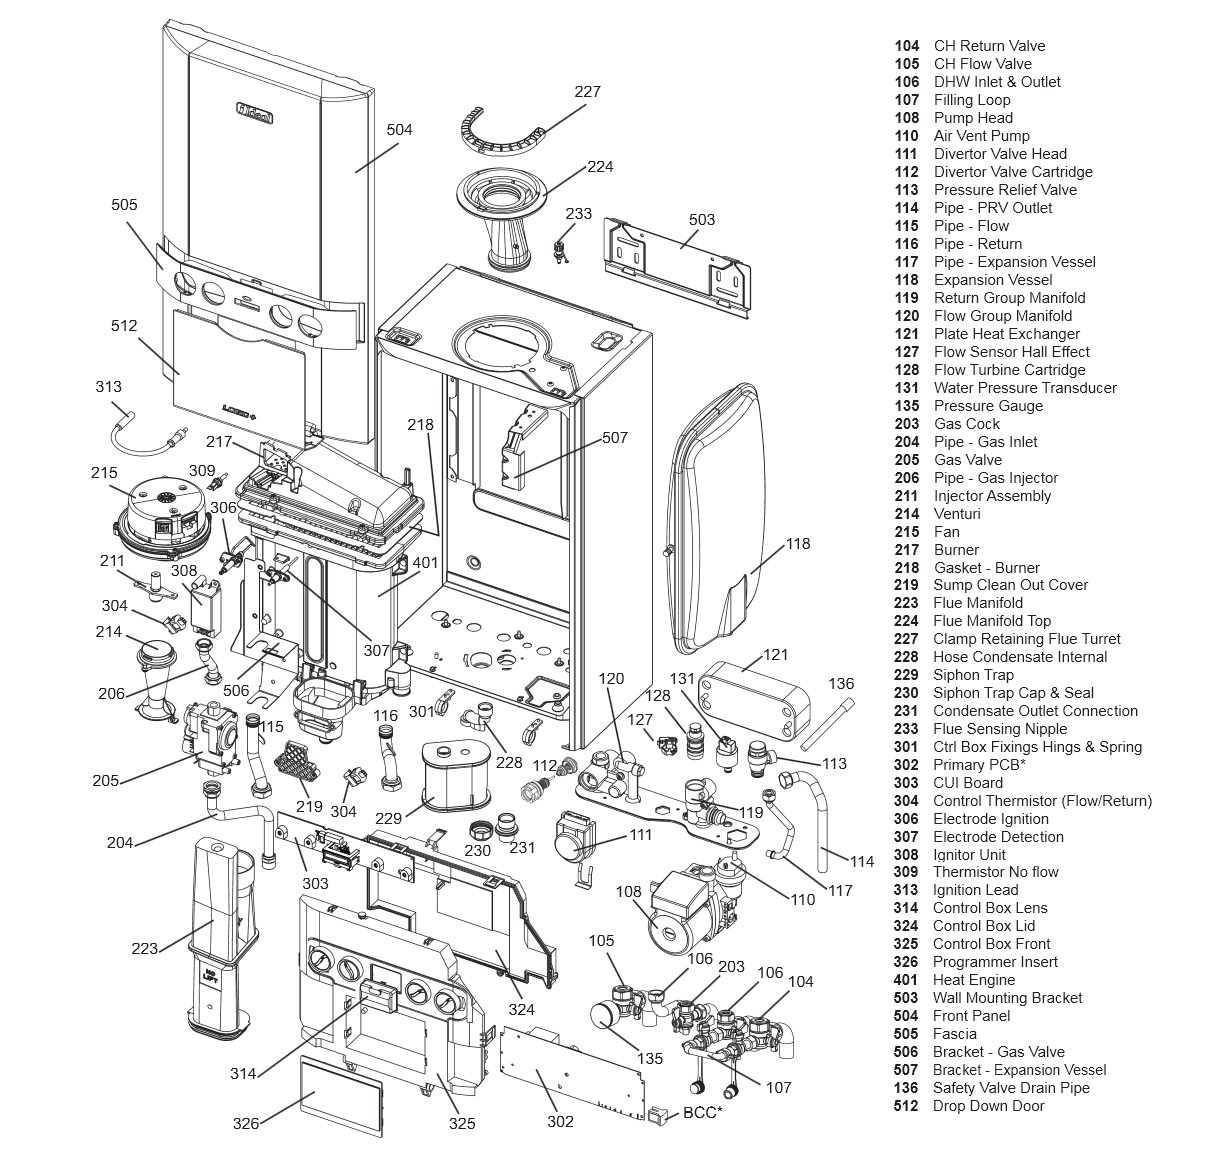 ideal logic combi 30 diagram boiler manuals: ideal logic + combi 24 #11